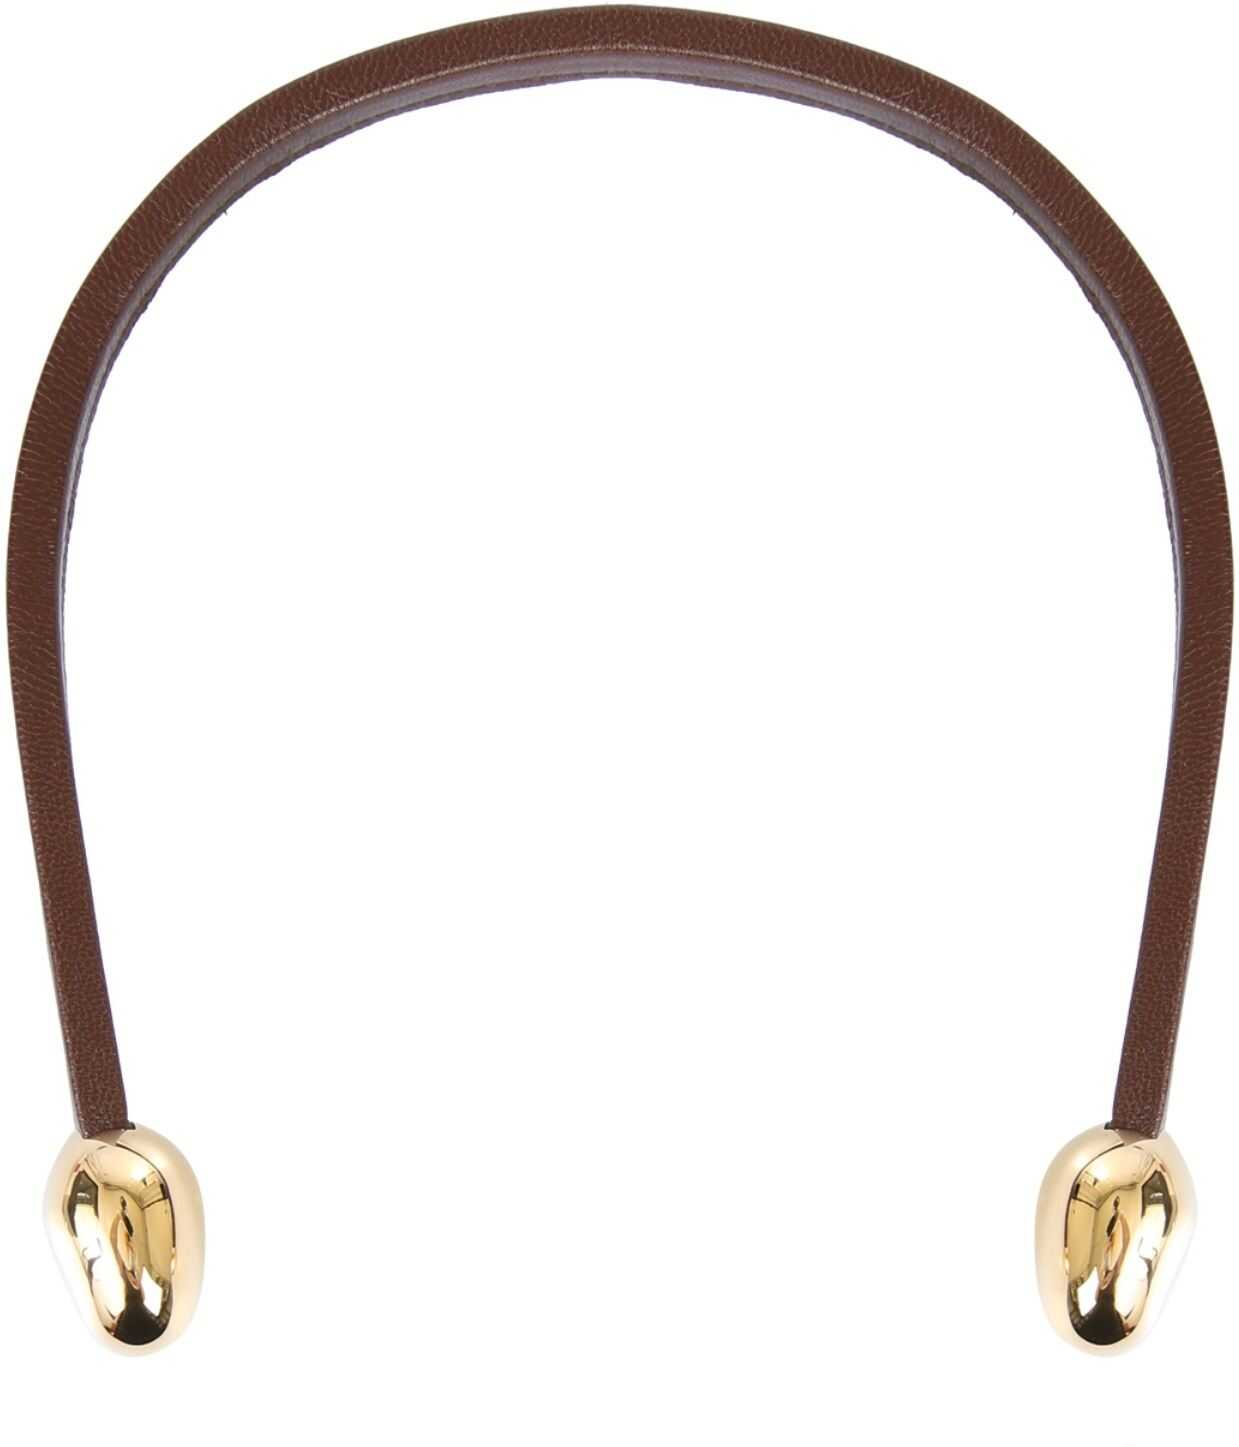 Bottega Veneta Leather Necklace BROWN